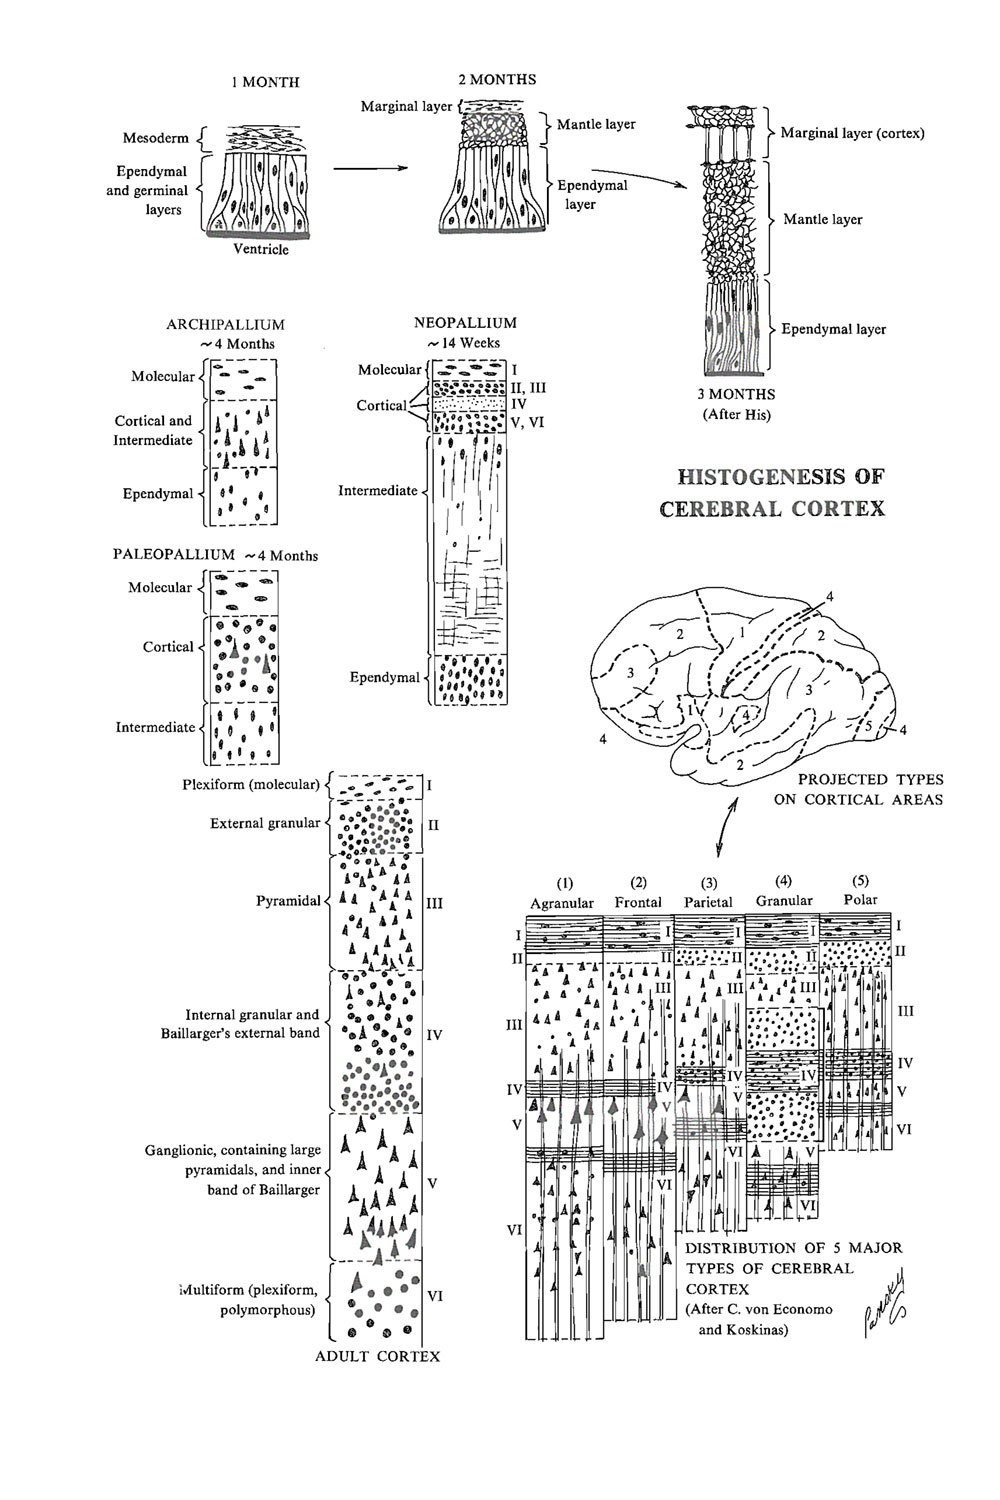 histogenesis of the cerebral cortex: image #1